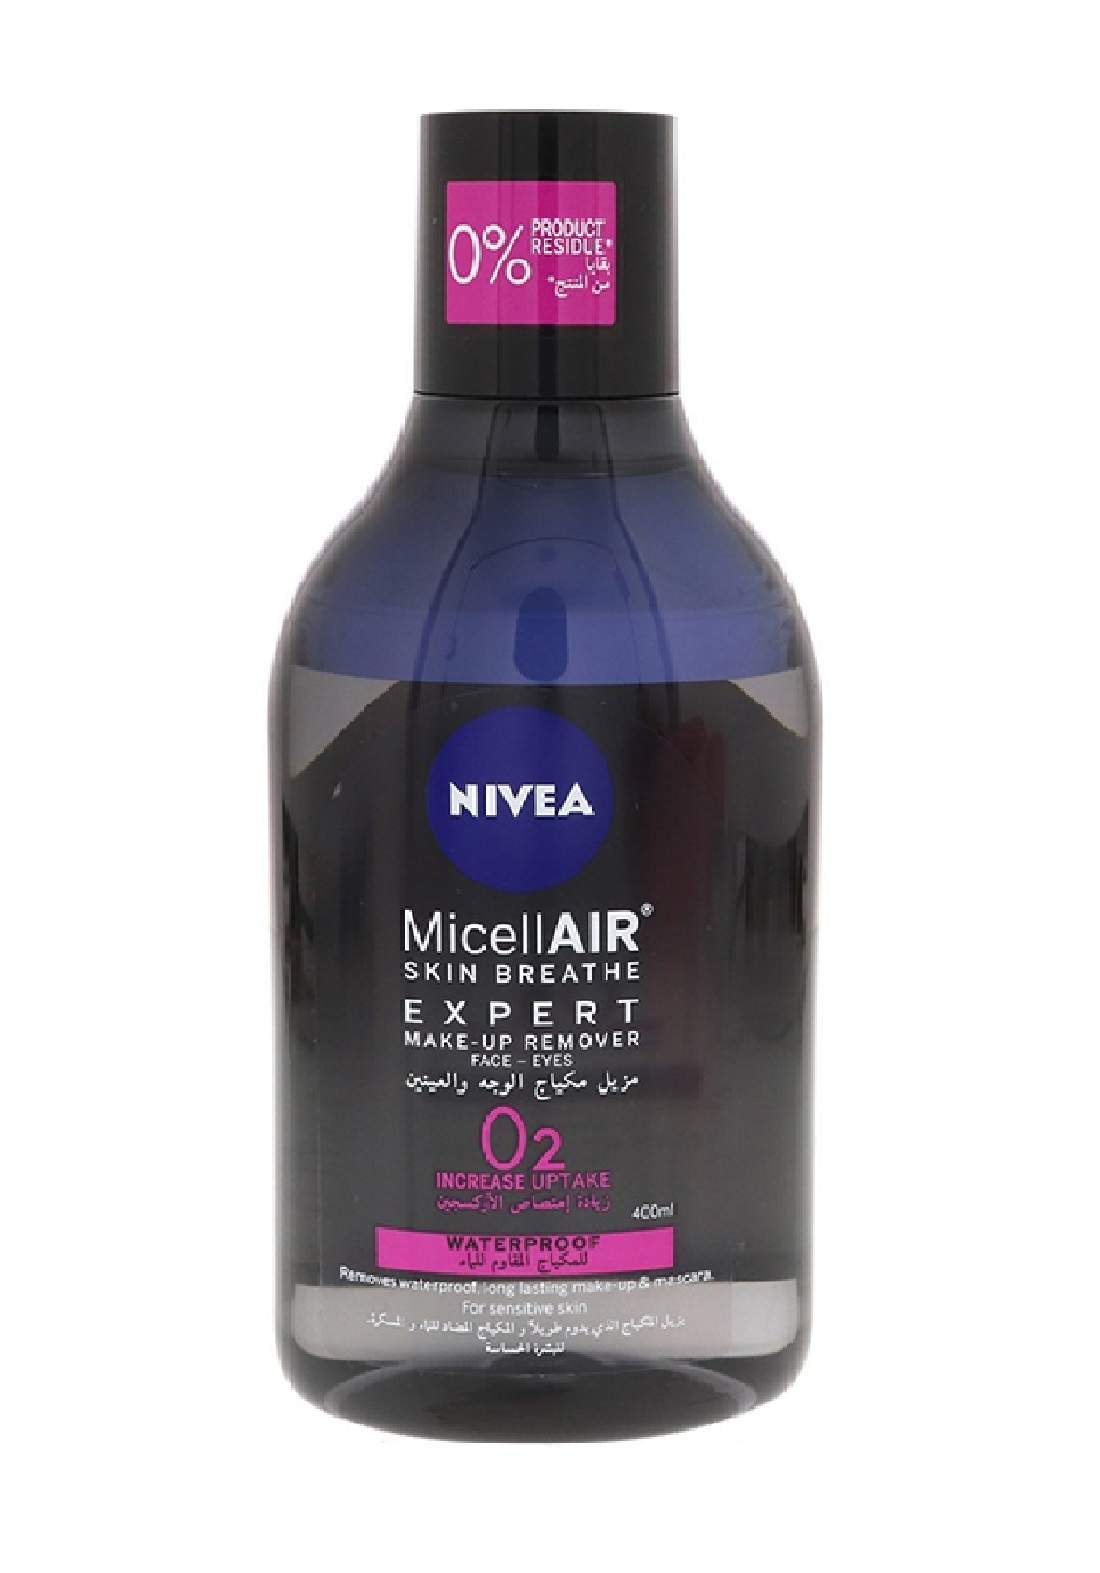 Nivea Micellair Skin Breath Makeup Remover Rose Water In Oil  400ml مزيل مكياج